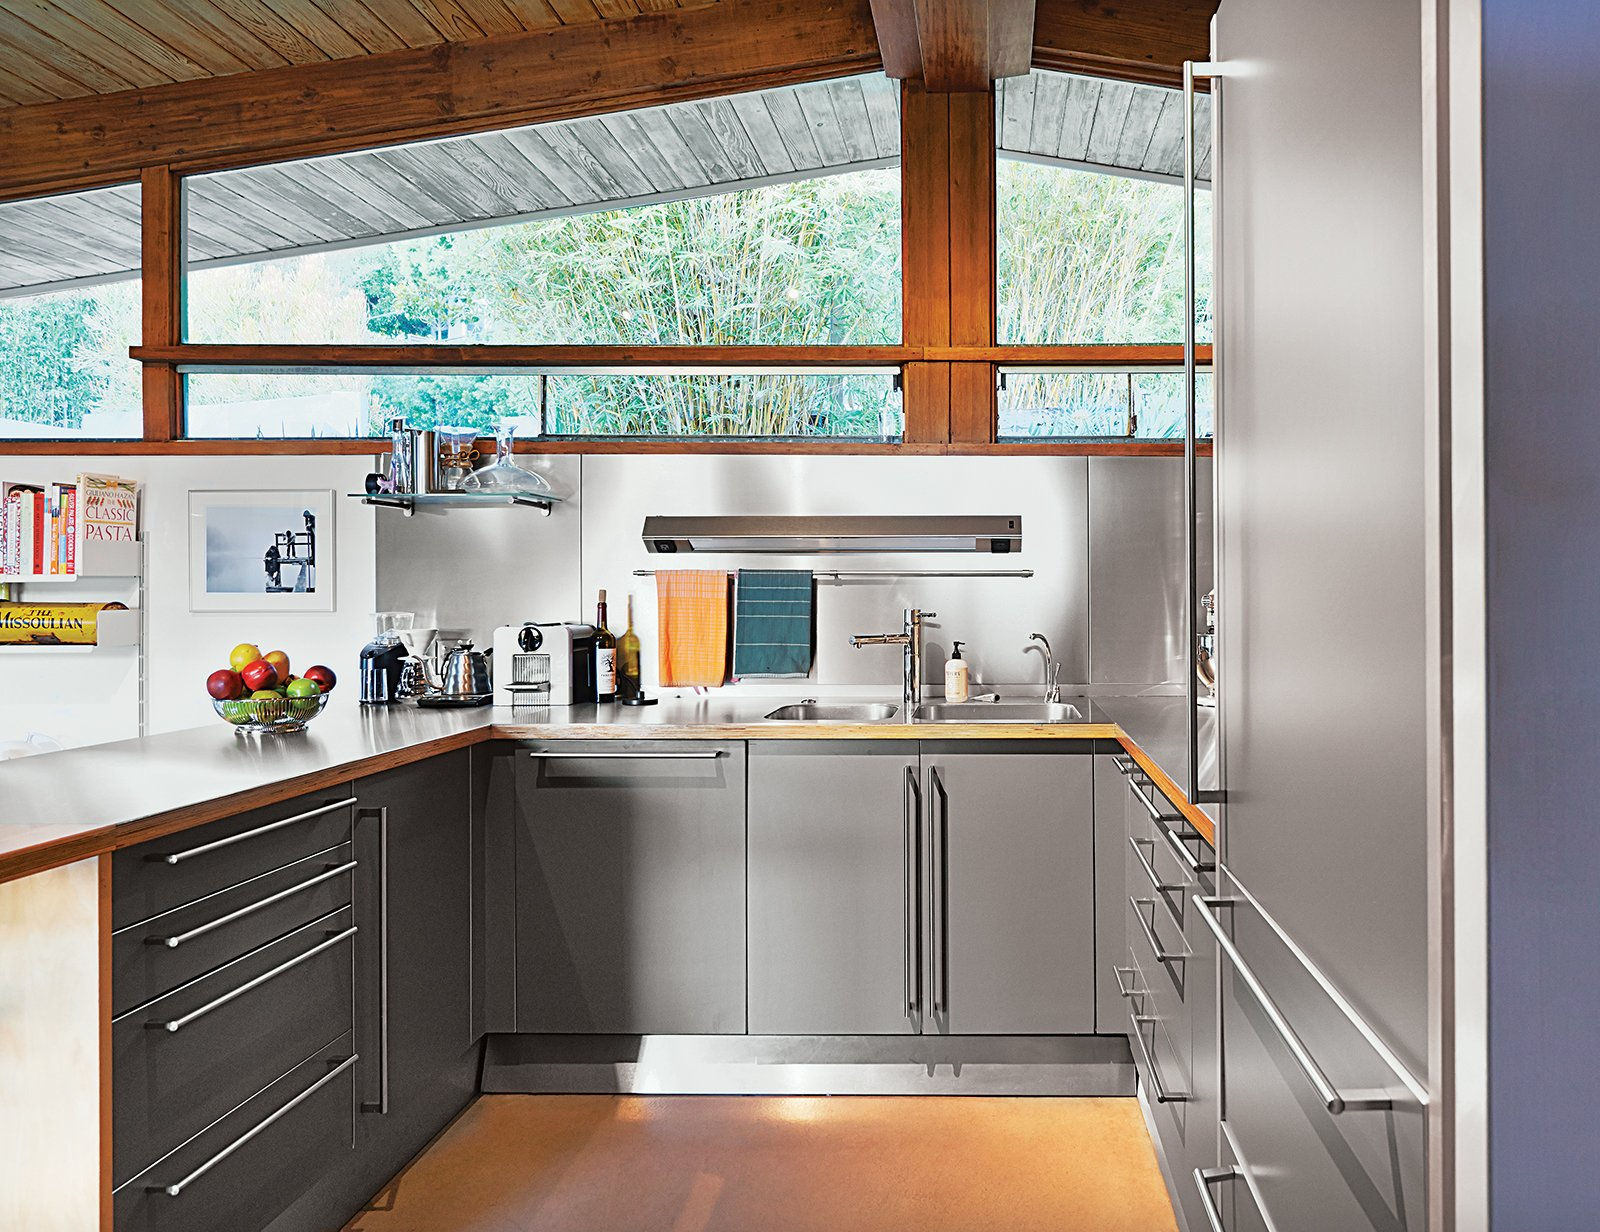 A previous owner remodeled the kitchen in 2000, outfitting it with stainless-steel cabinets by Bulthaup as well as a Sub-Zero refrigerator and an induction stove by Diva. Tagged: Kitchen and Metal Counter.  Midcentury Homes by Dwell from A Midcentury Home Keeps the History Alive